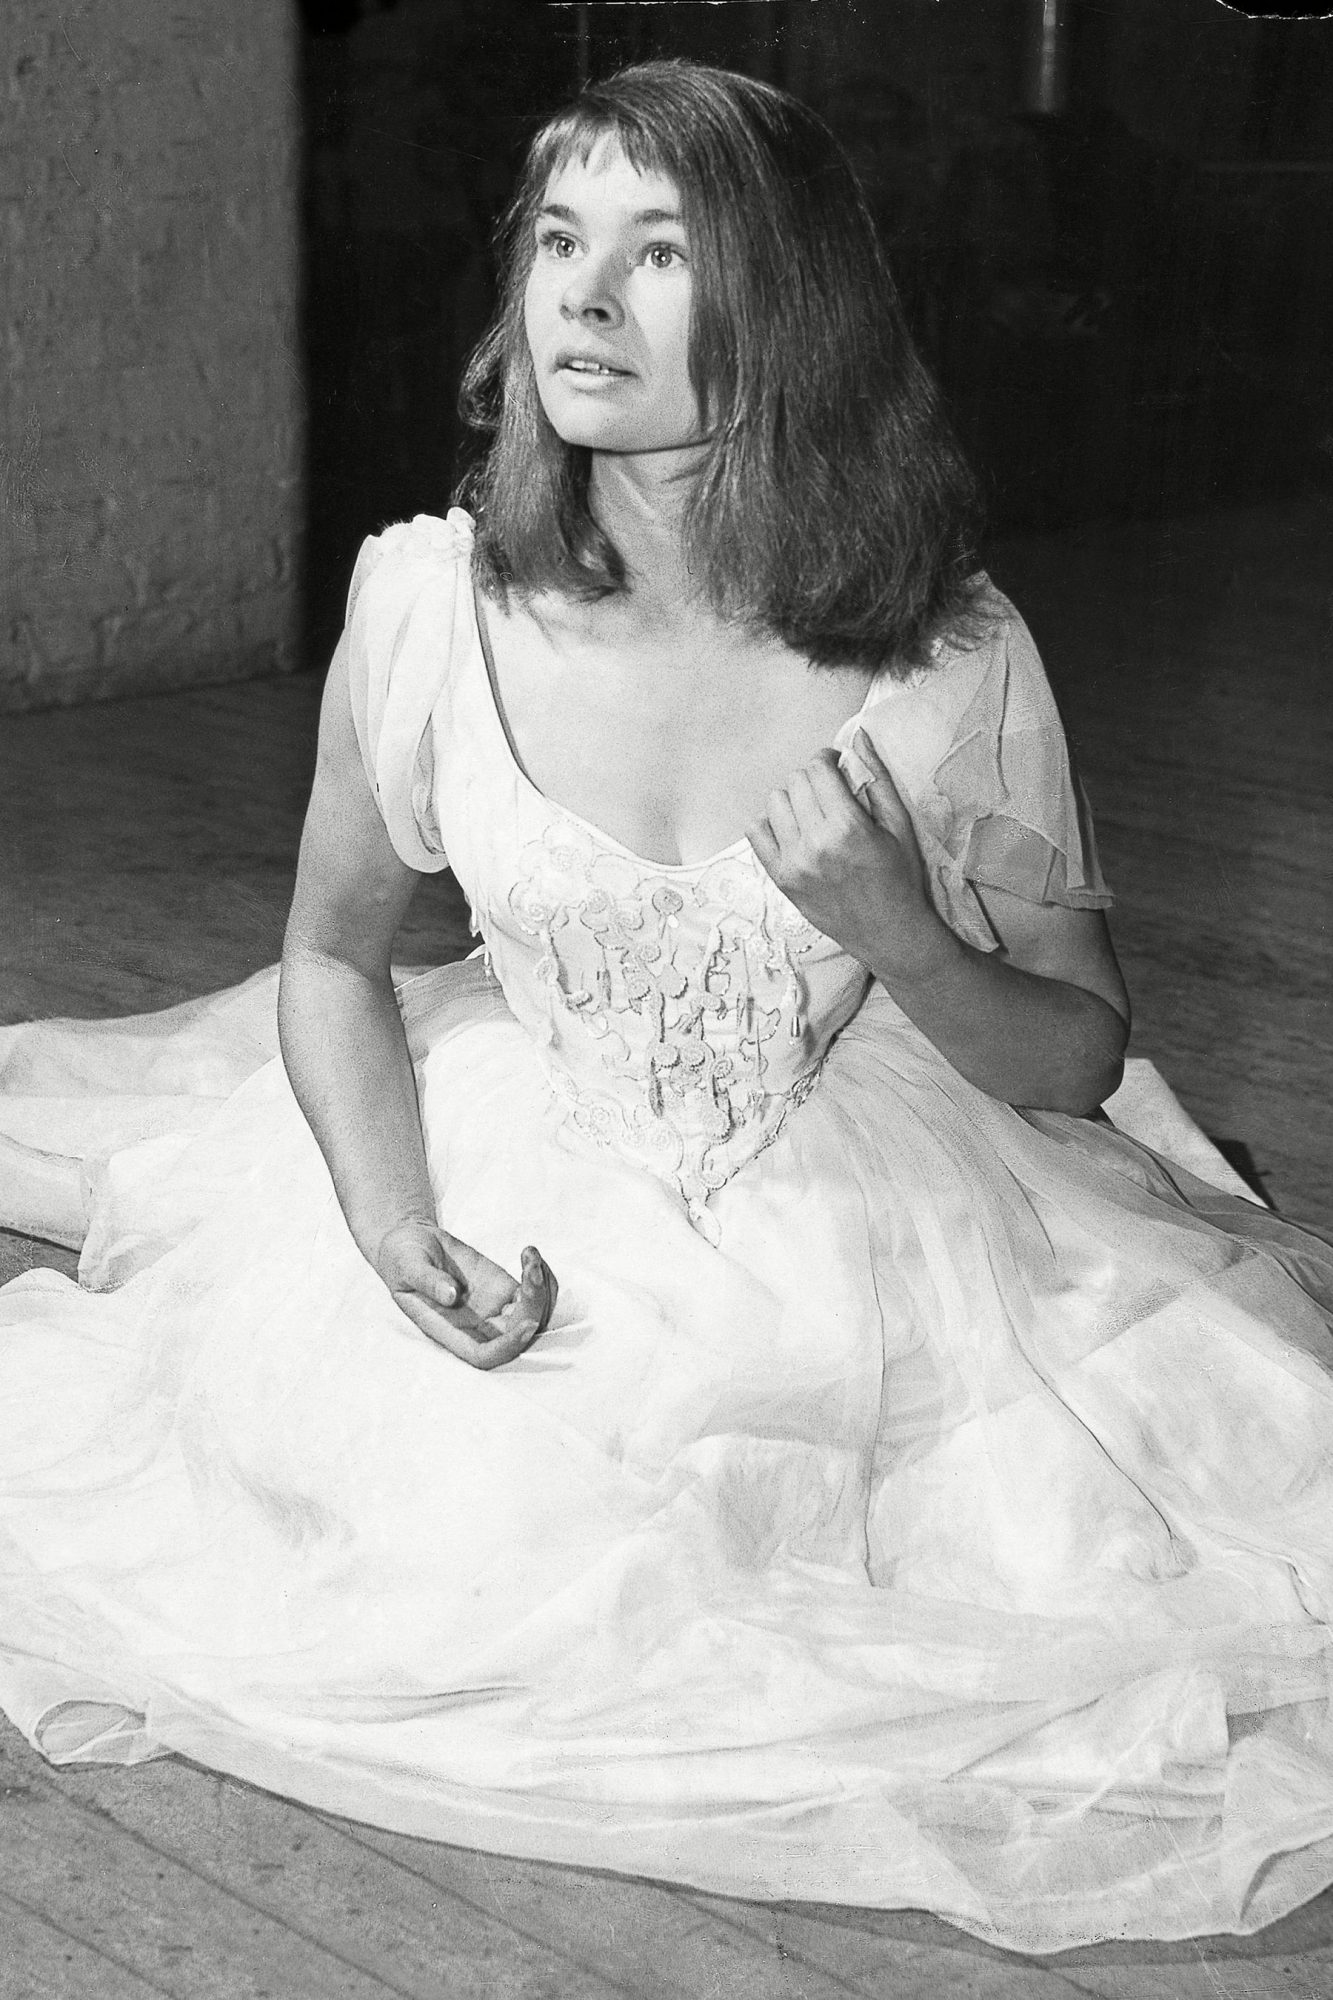 Judi Dench On Stage As Ophelia In Hamlet At The Old Vic In September 1957